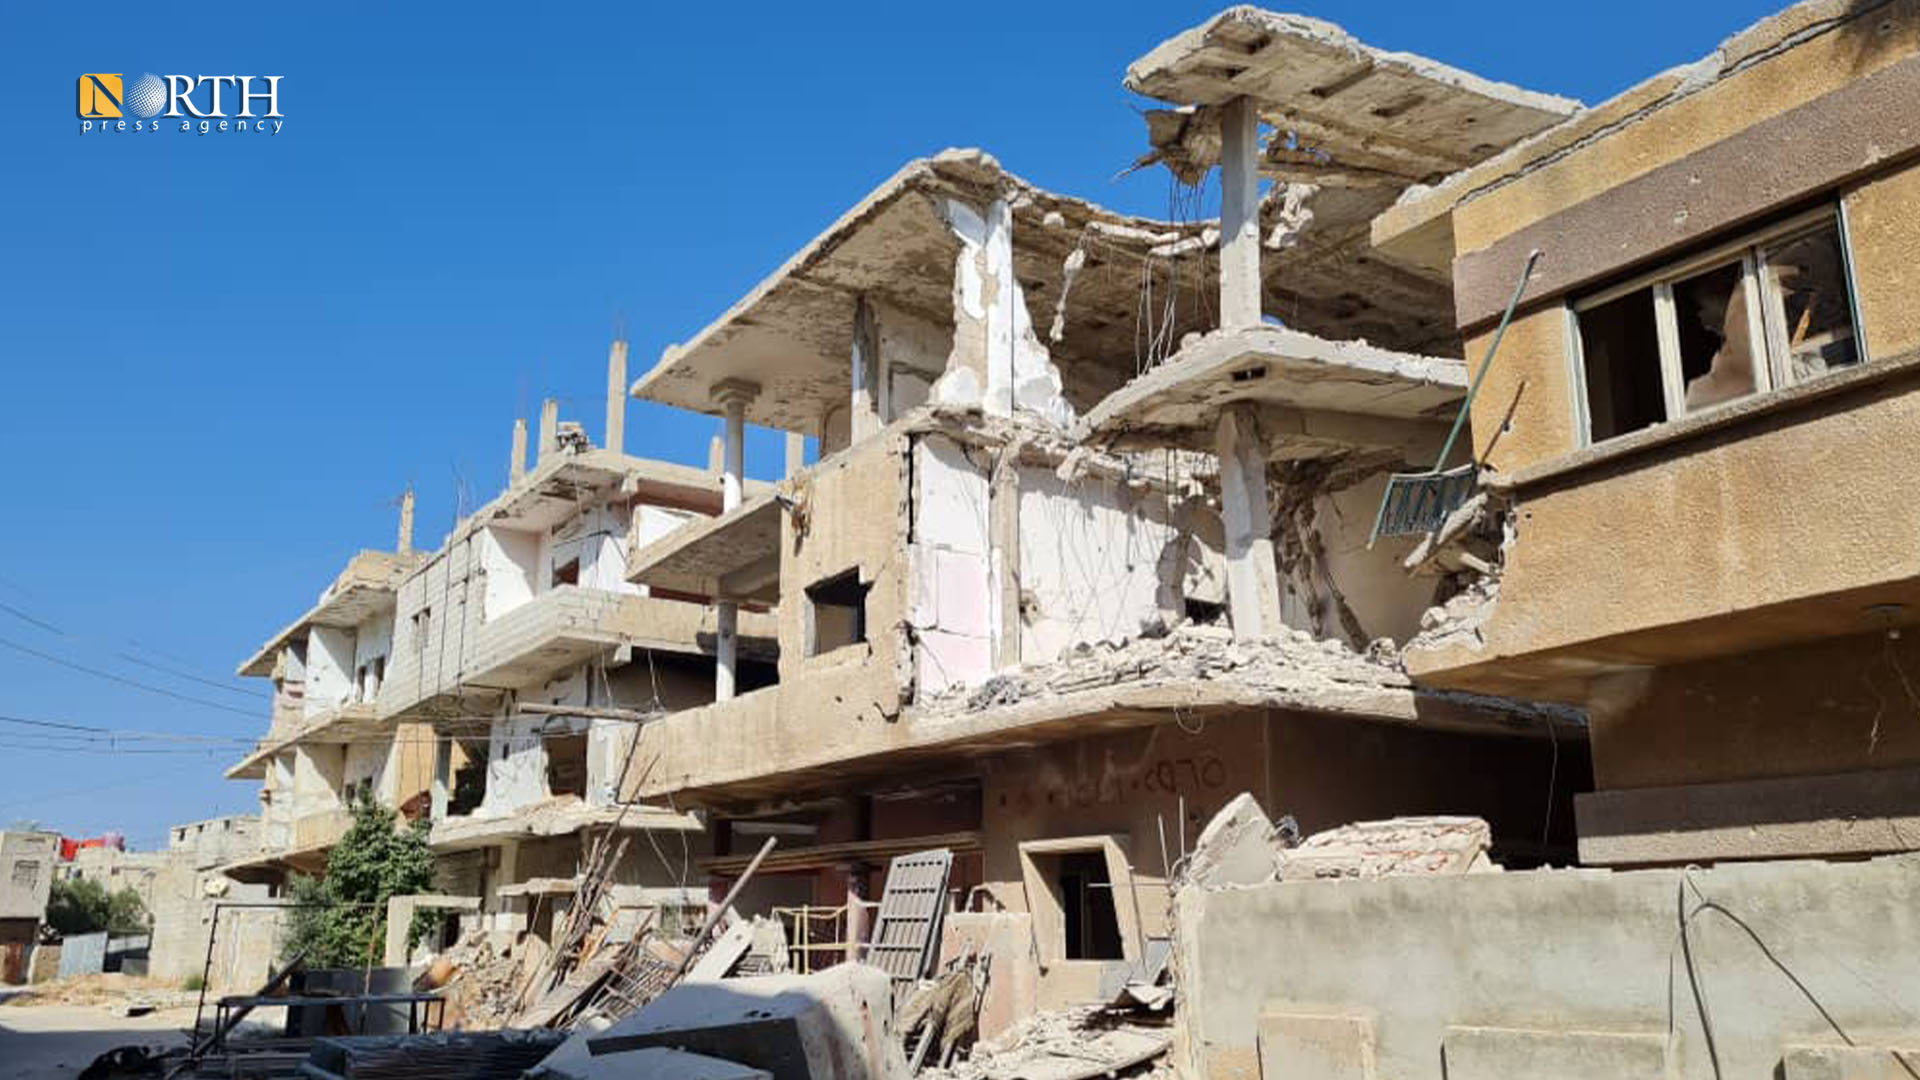 Houses in Daraa al-Balad bombed by government forces and Iranian-backed factions – North Press